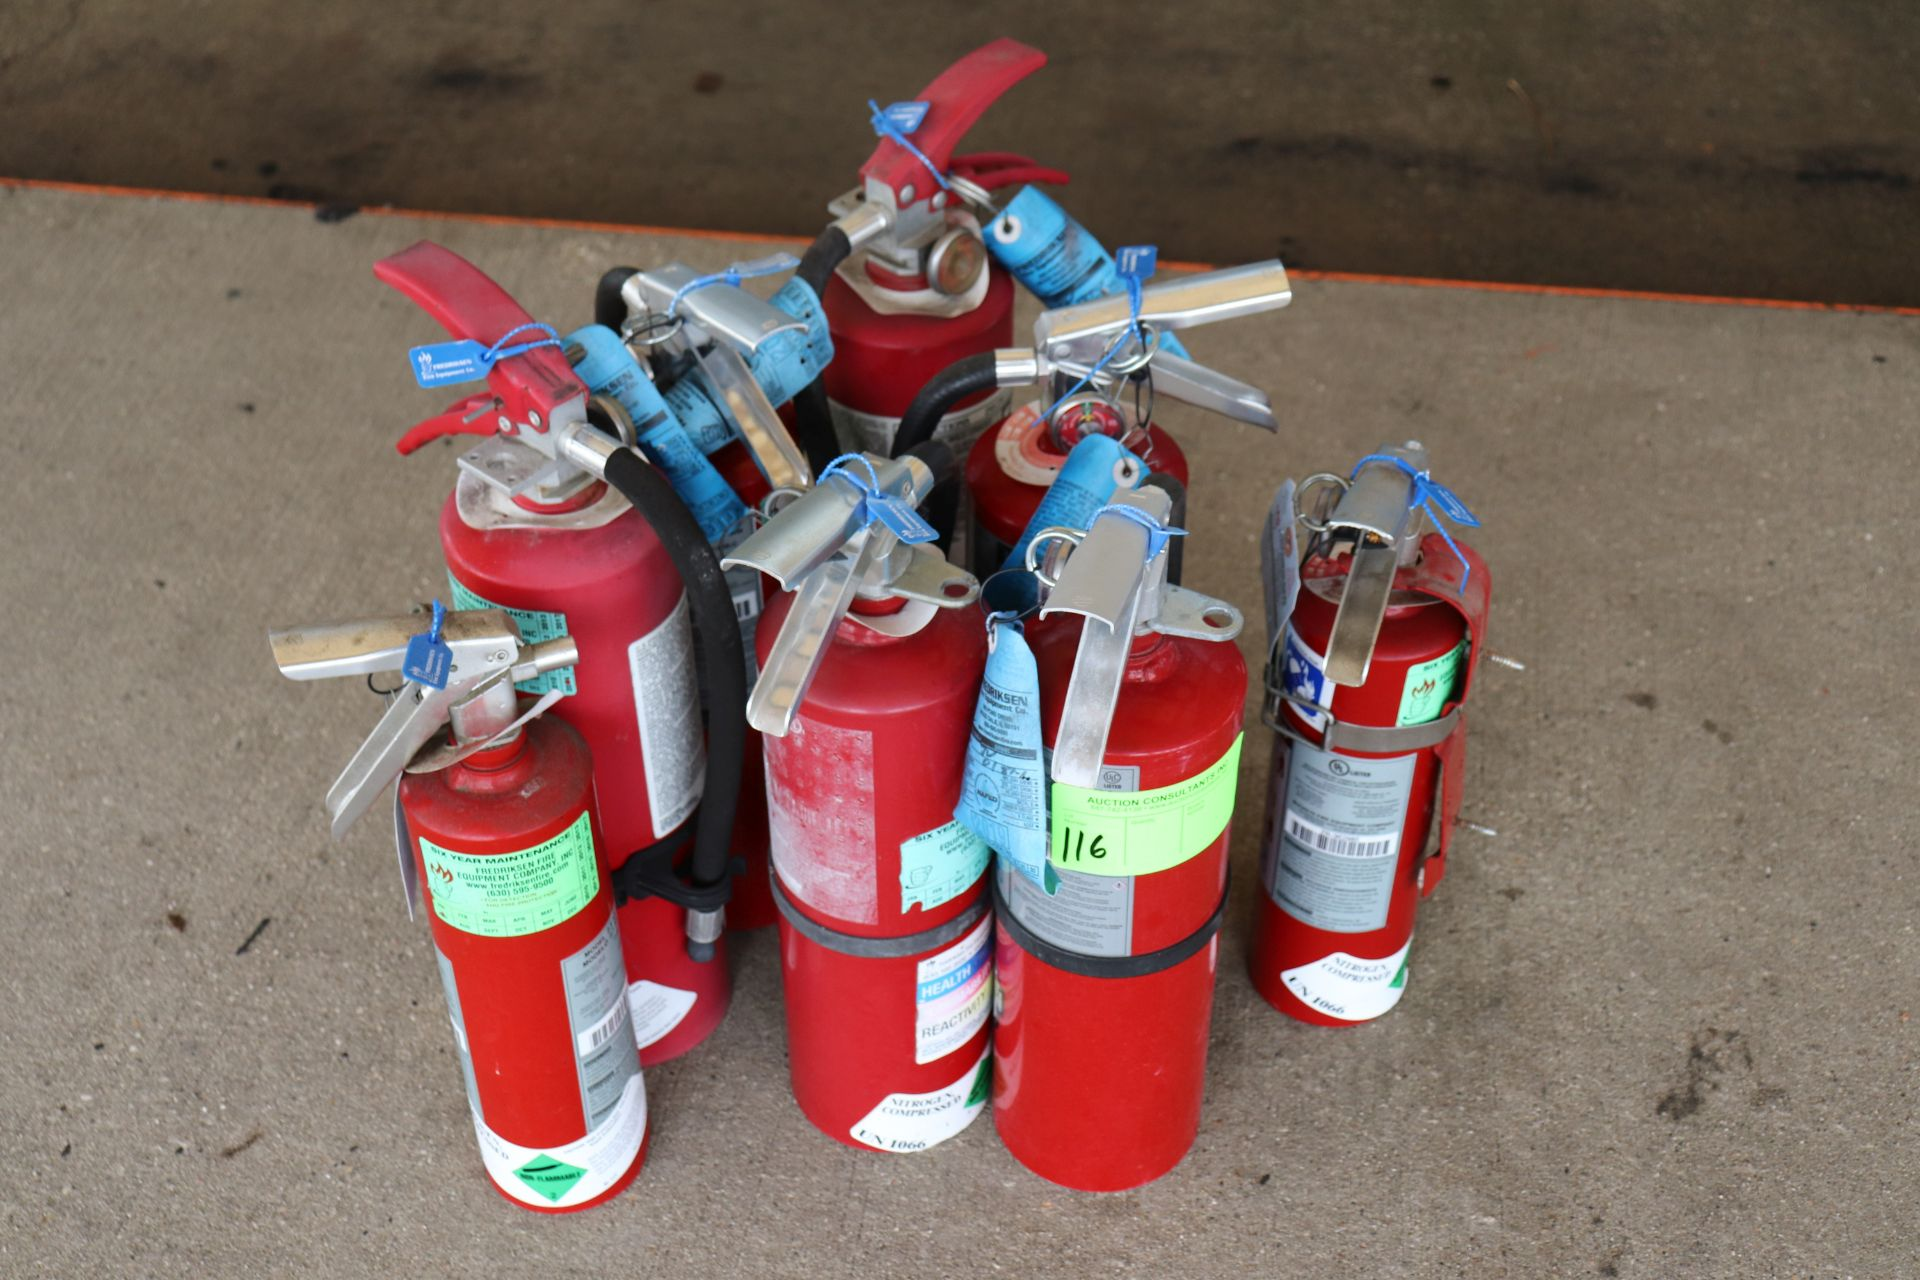 Lot of eight fire extinguishers, recently inspected